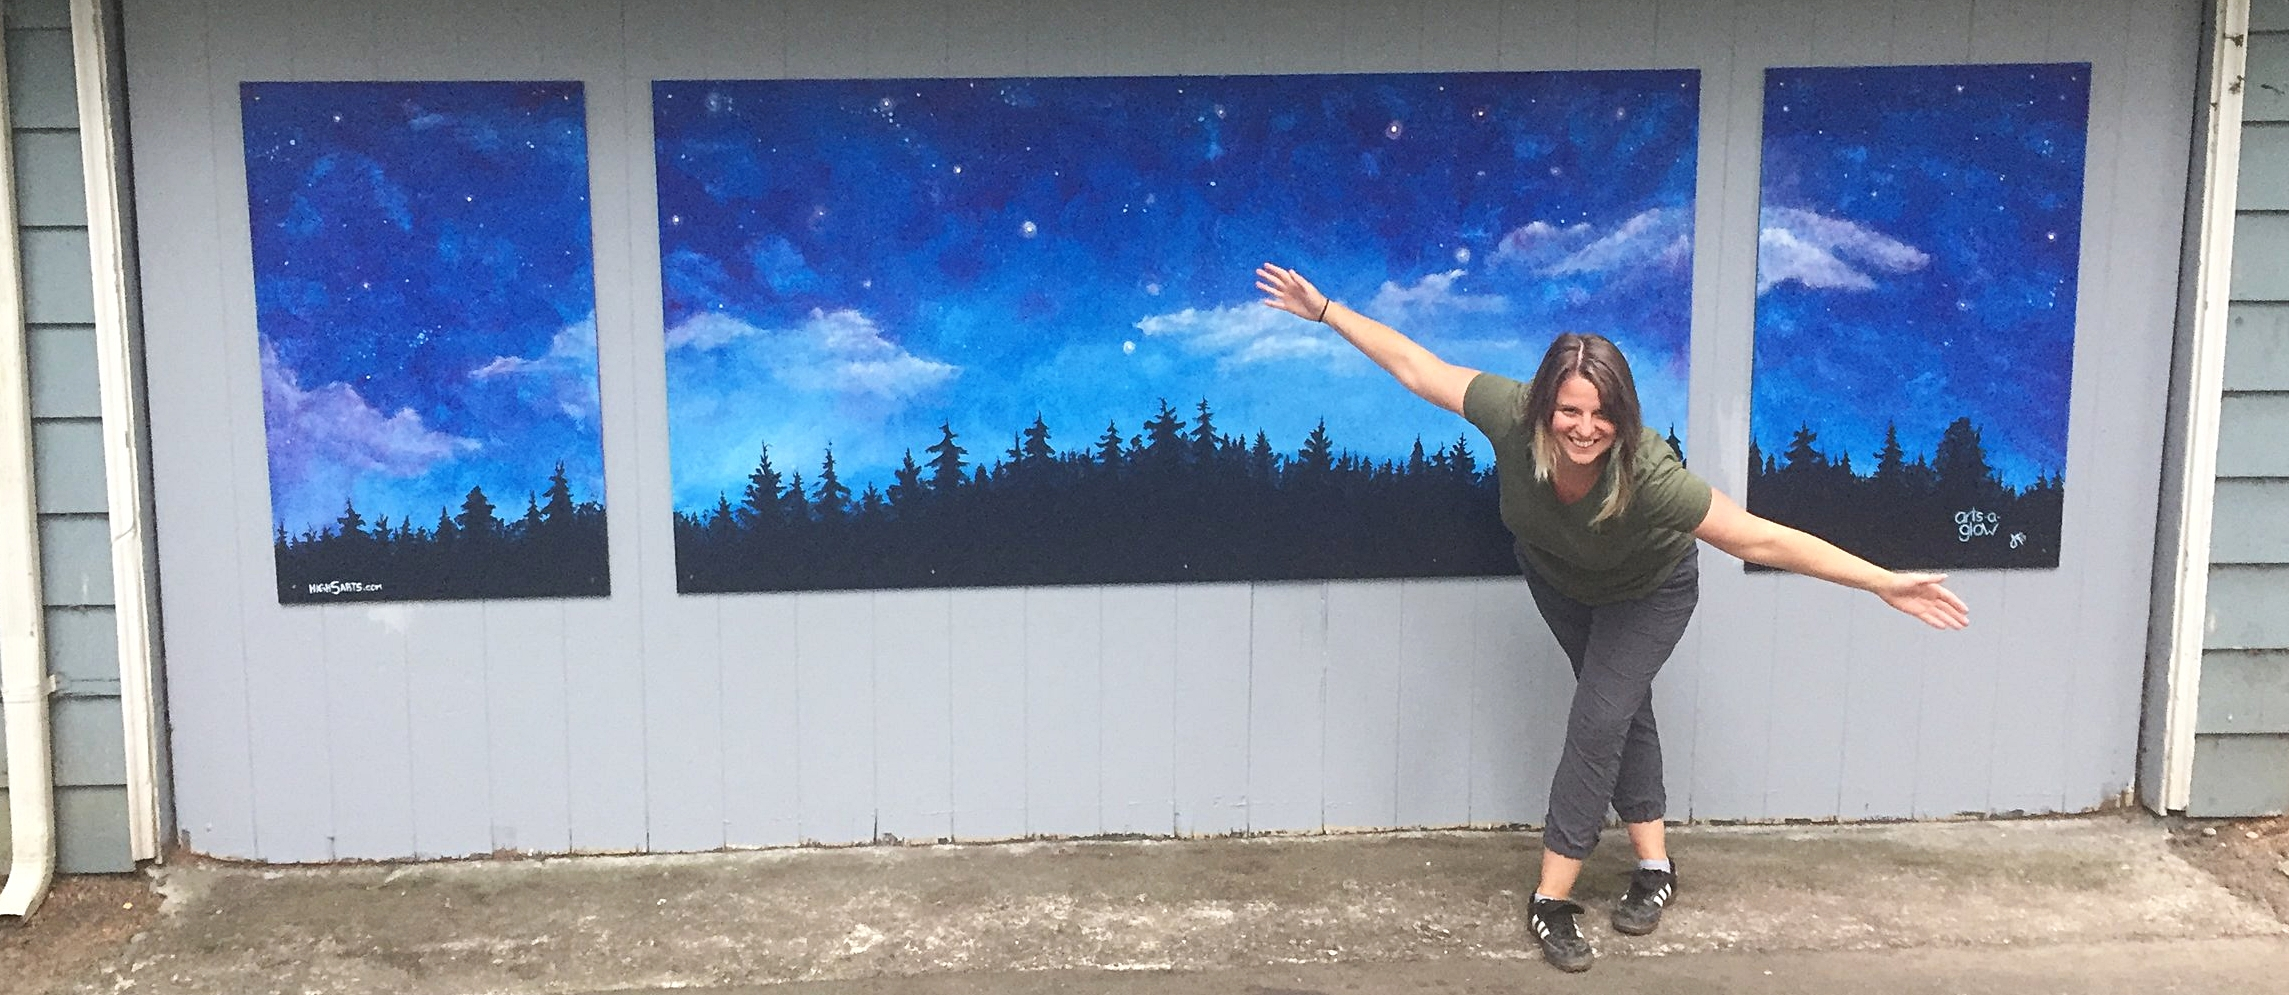 Thank you Burien for the opportunity to create a mural for Arts-A-Glow's 10th anniversary. Arts-A-Glow is very dear to my heart, I have been producing it with 2 Co-Producers Gina Kallman and Kathy Justin for the past 6 years, before that I was an installation artist and a face painter. For the 2017 Arts-A-Glow the opportunity came up to paint a permanent mural in Dottie Harper park that represents the magic of Arts-A-Glow. It was an honor to create the mural, it is dedicated to all the countless hours that go into creating an event that pays artists and brings art to all incomes.Stop by the park anytime and enjoy this amazing skyline.  To learn more about Arts-A-Glow check out the event on Facebook @ArtsAGlow.